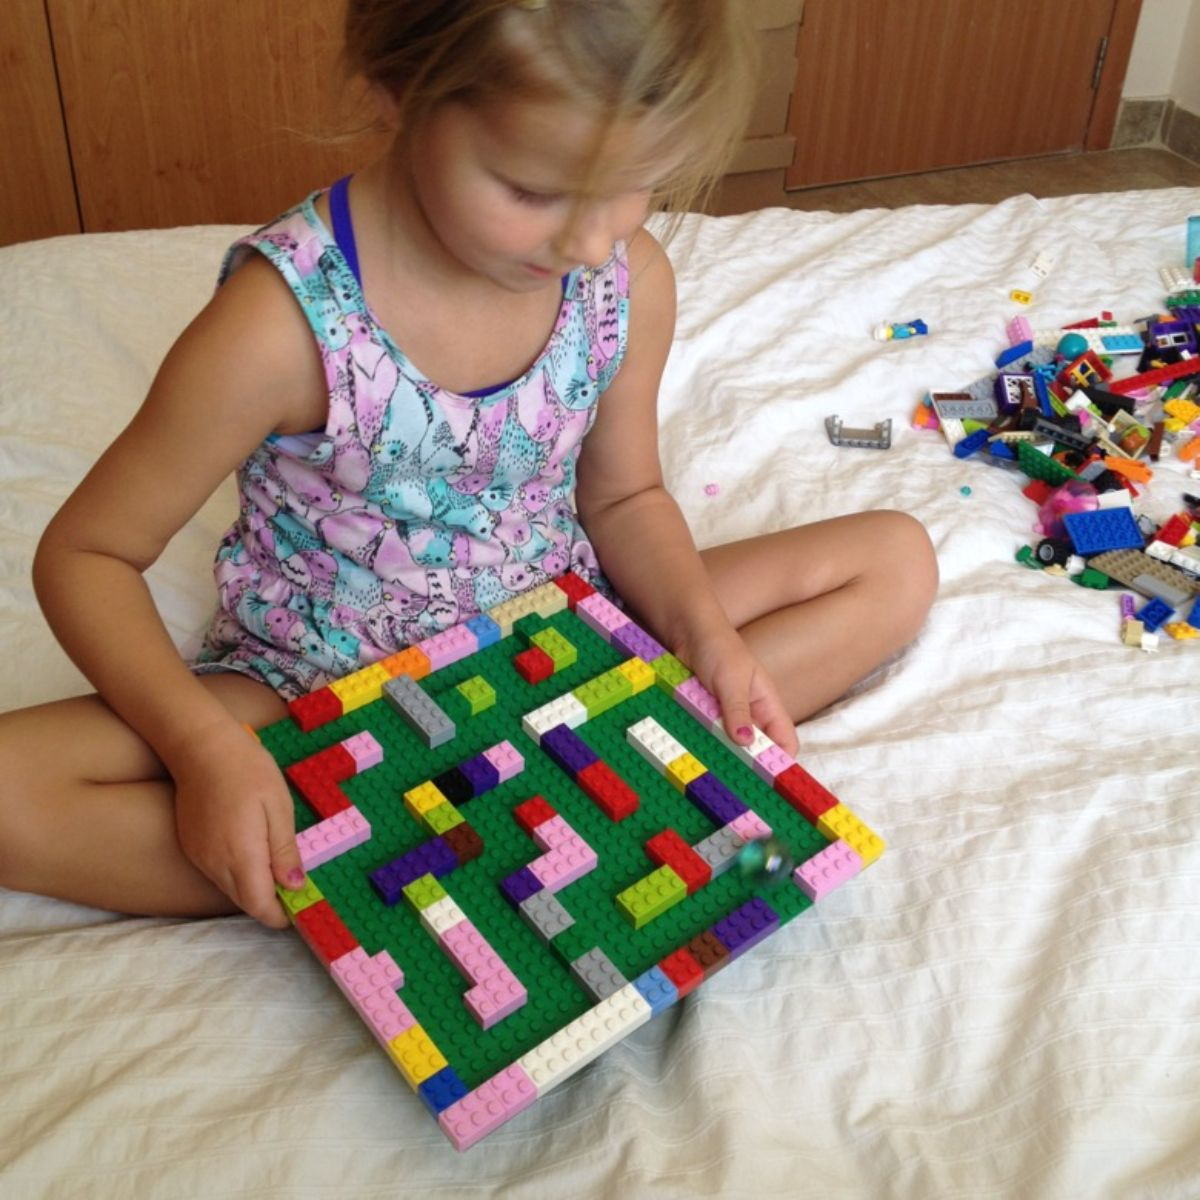 a child sits cross-legged on a bed holding a lego maze with a marble in it. a pile of lego is next to her